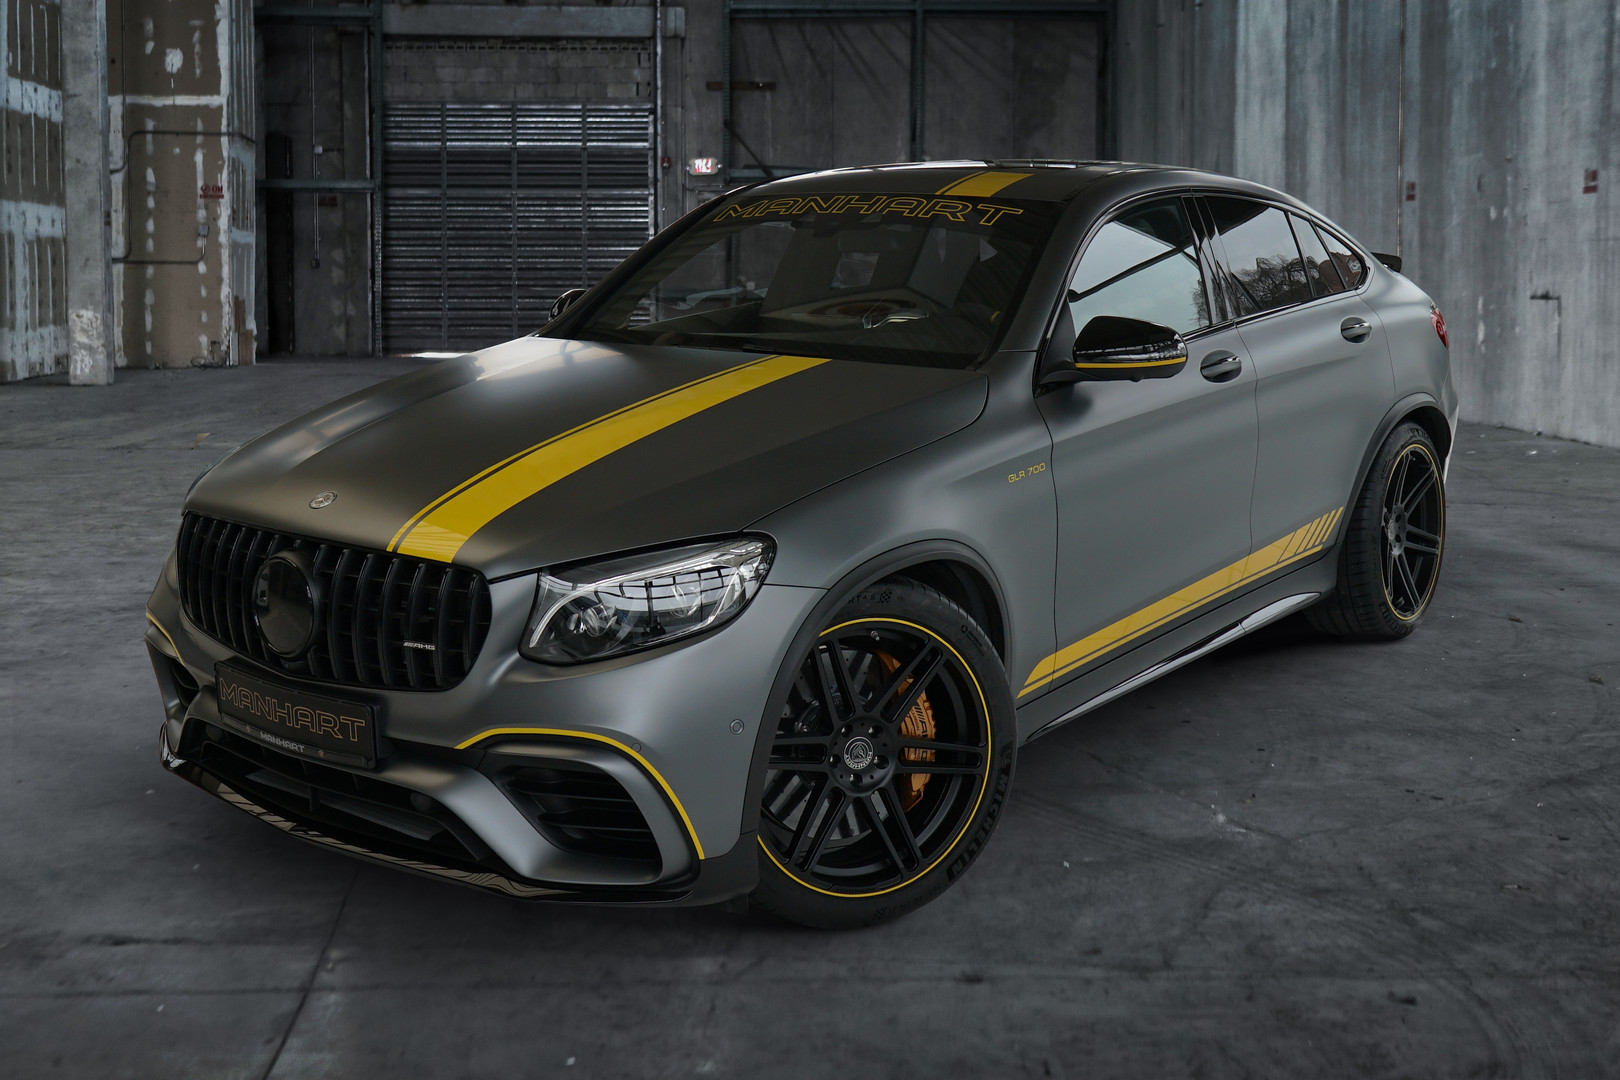 Mercedes-AMG GLC 63 S Coupe by Manhart Packs 700 HP (522 kW)